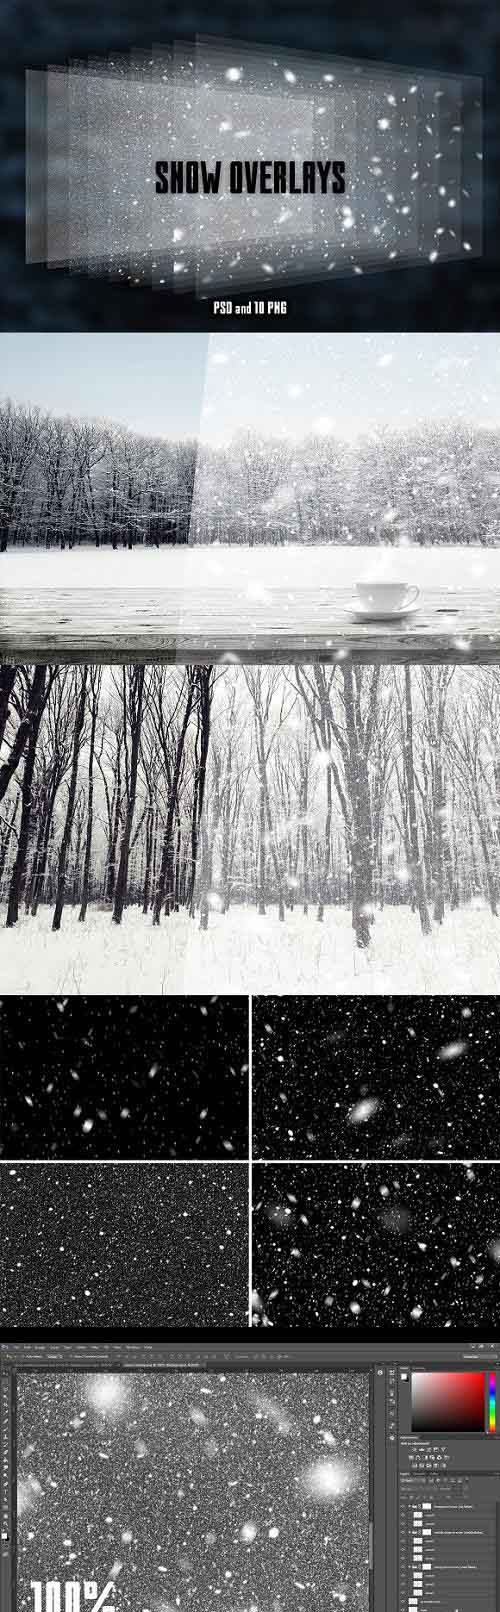 Real Snow Overlays for Your Photos 1093501